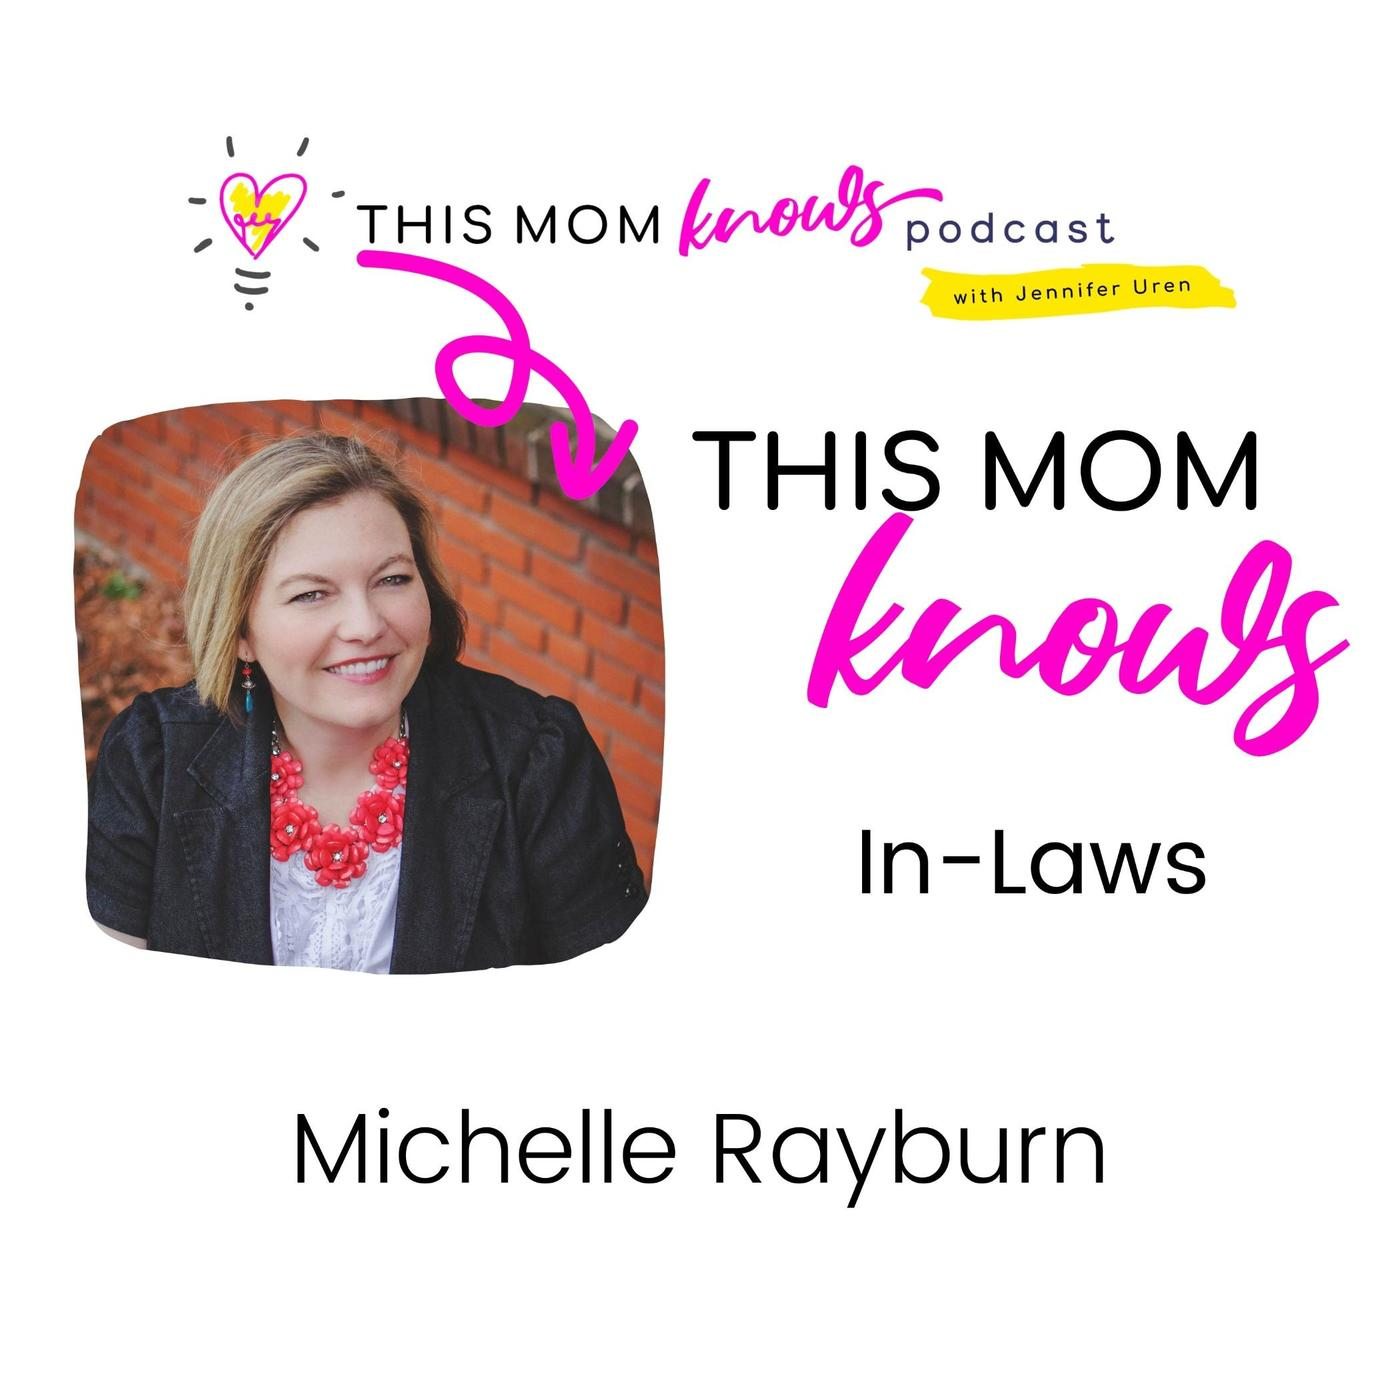 Michelle Rayburn on In-Laws